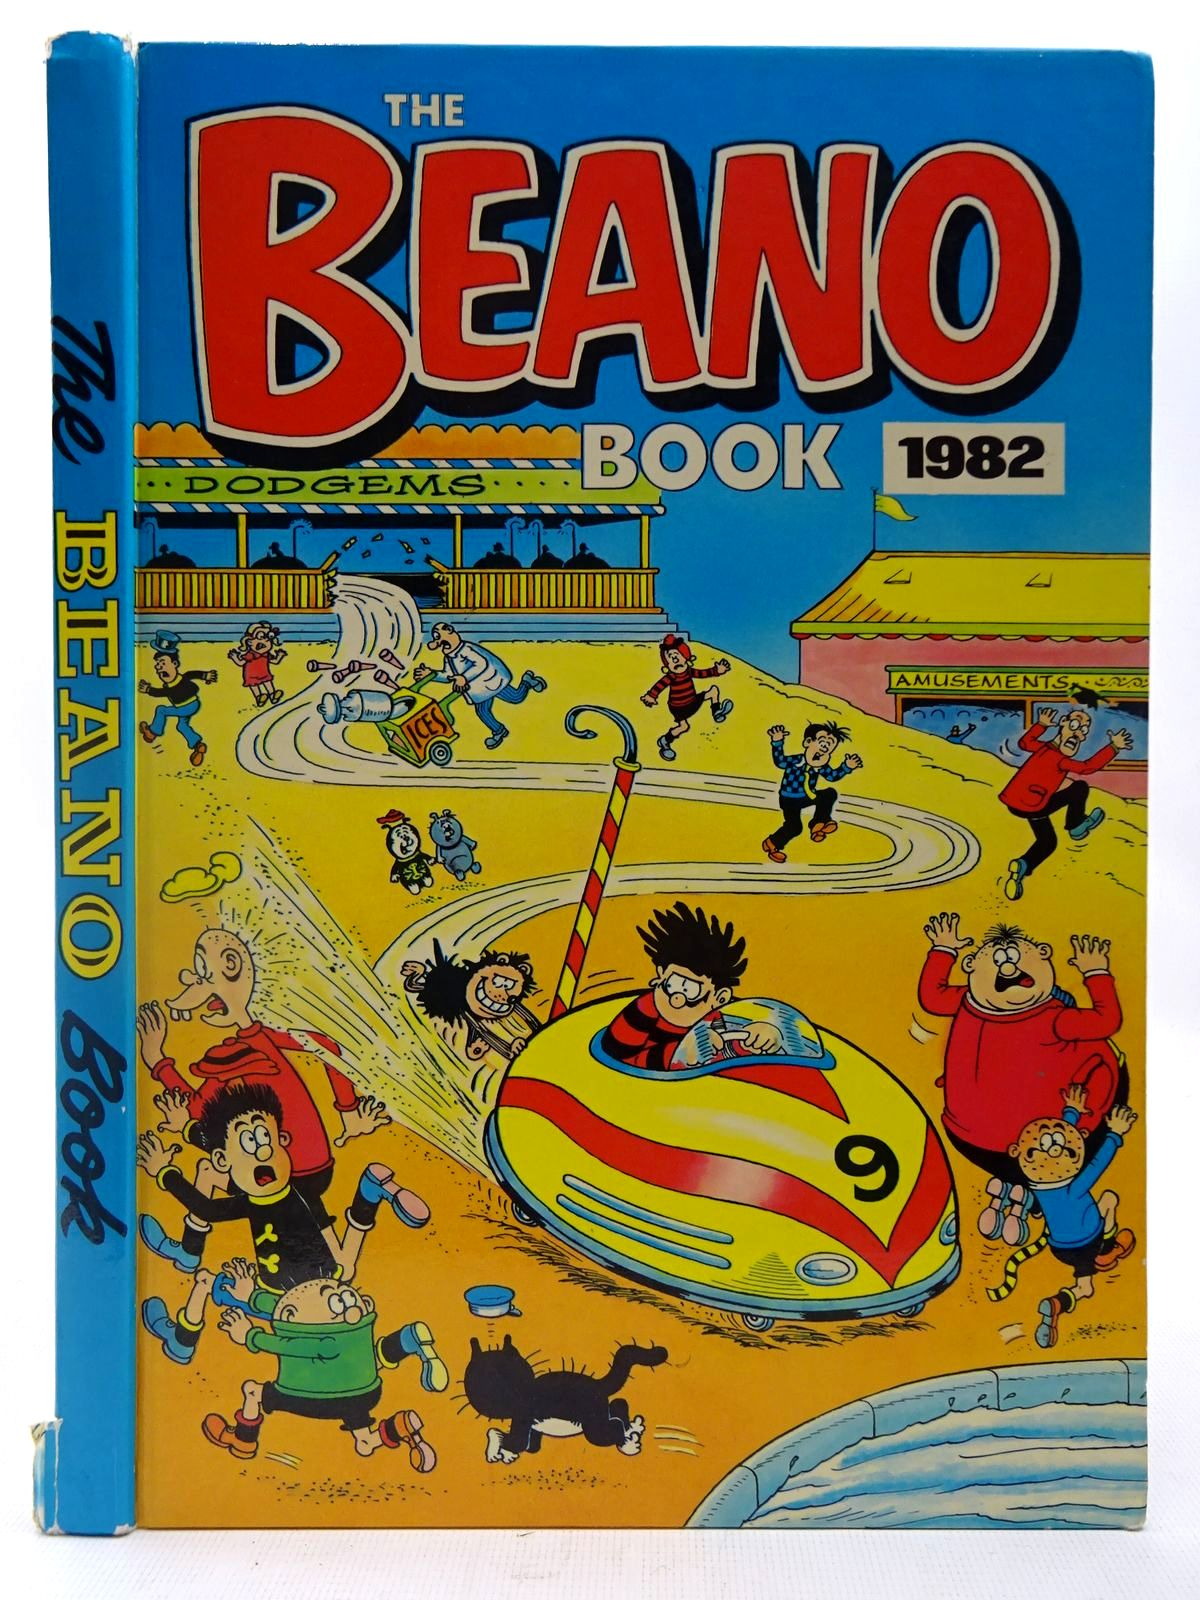 Photo of THE BEANO BOOK 1982 published by D.C. Thomson & Co Ltd. (STOCK CODE: 2127312)  for sale by Stella & Rose's Books